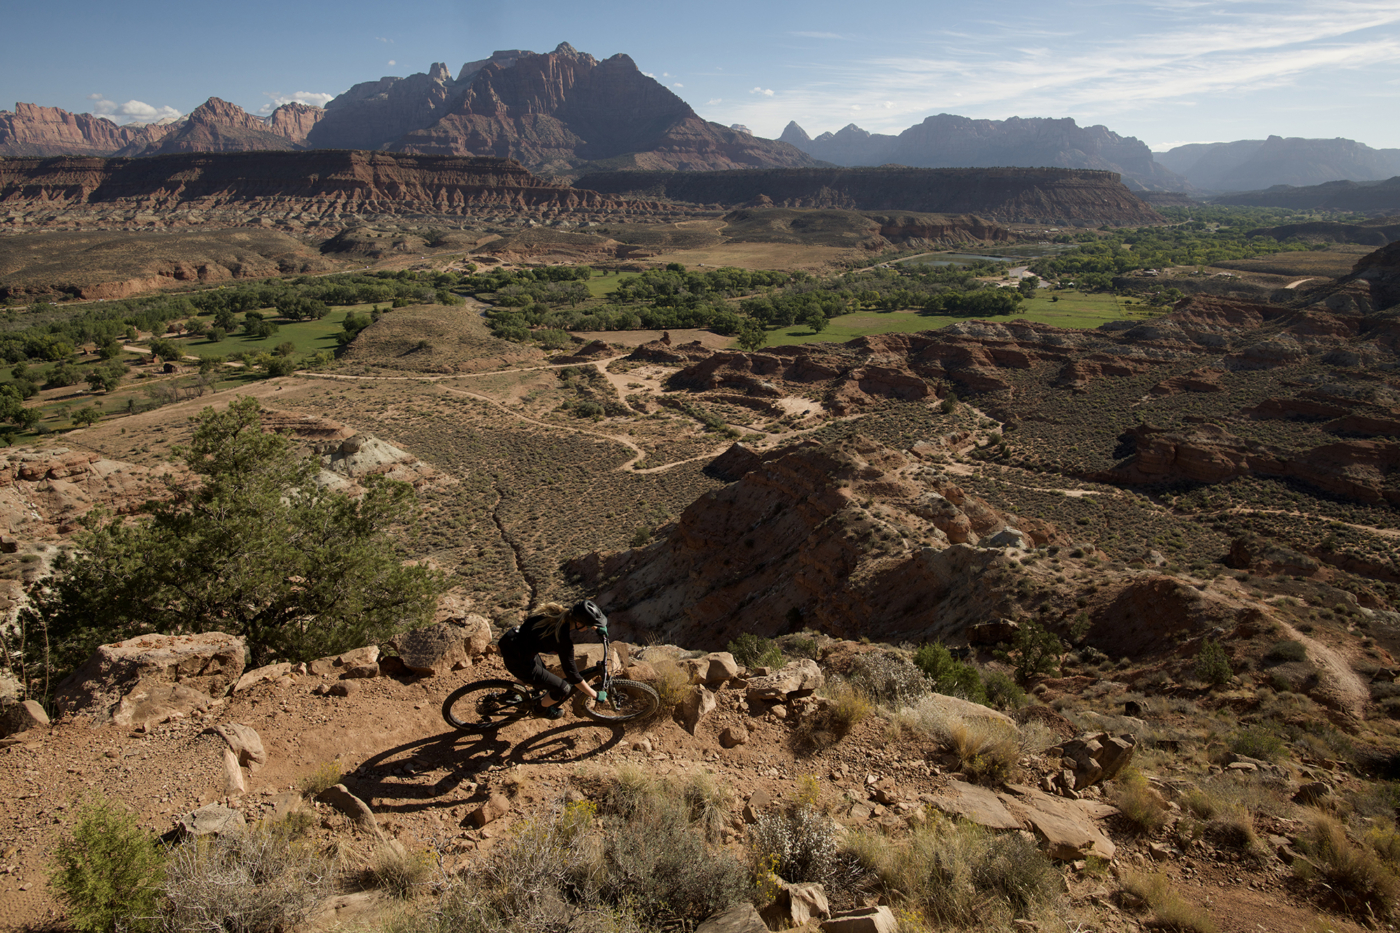 Overhead view of person riding a mountain bike on a red dirt trail surrounded by red sandstone cliffs